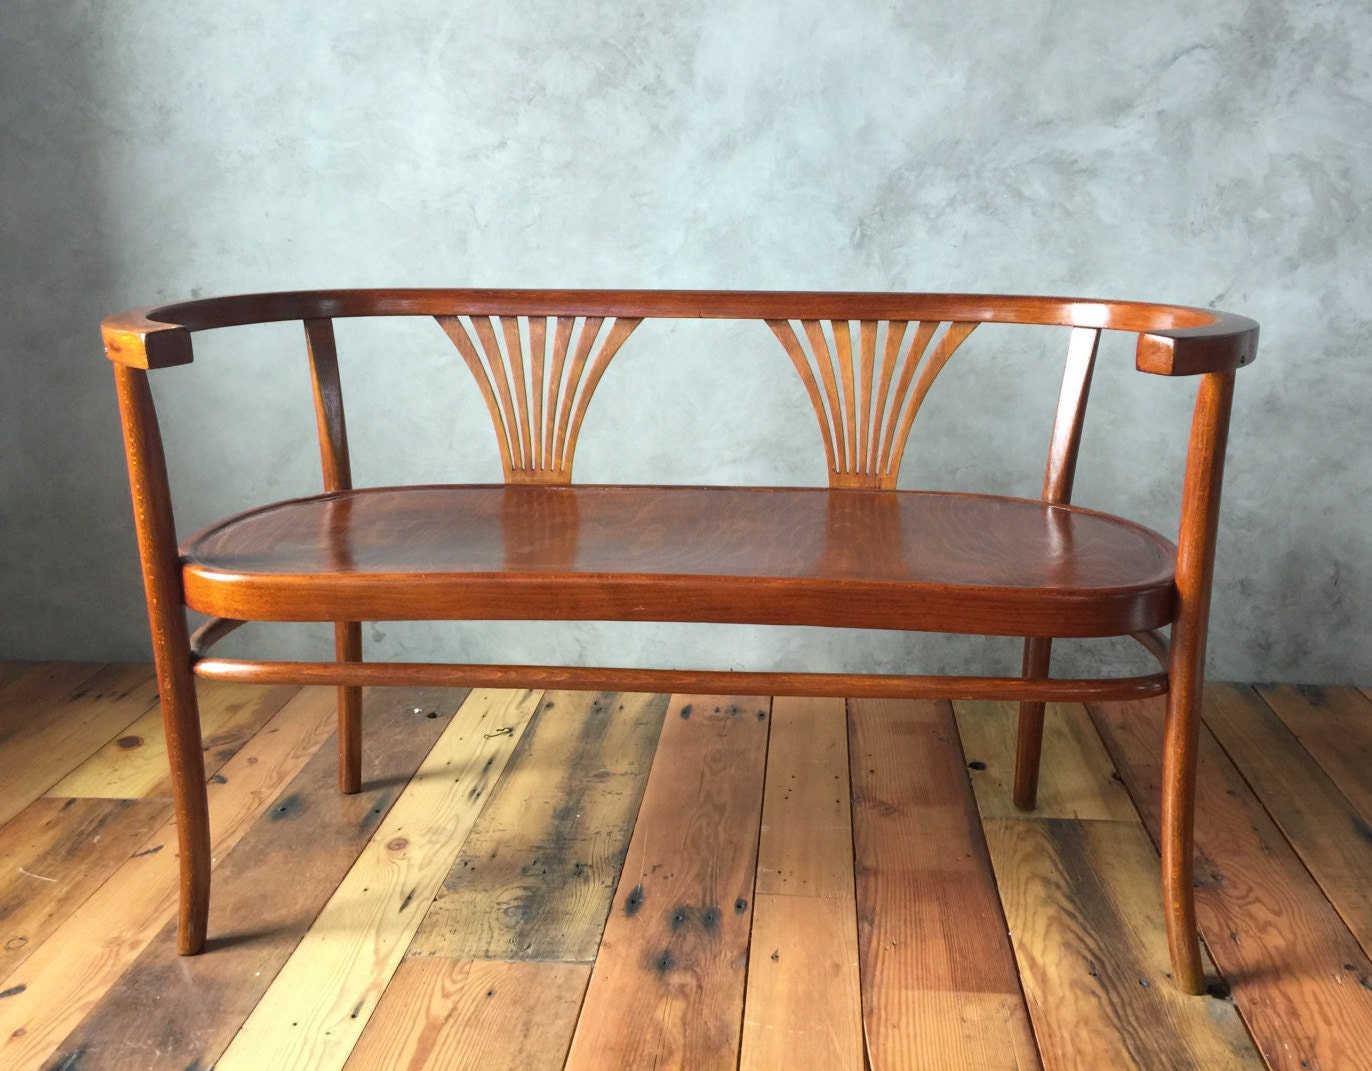 Sold Thonet Bentwood Bench Settee Circa 1900s